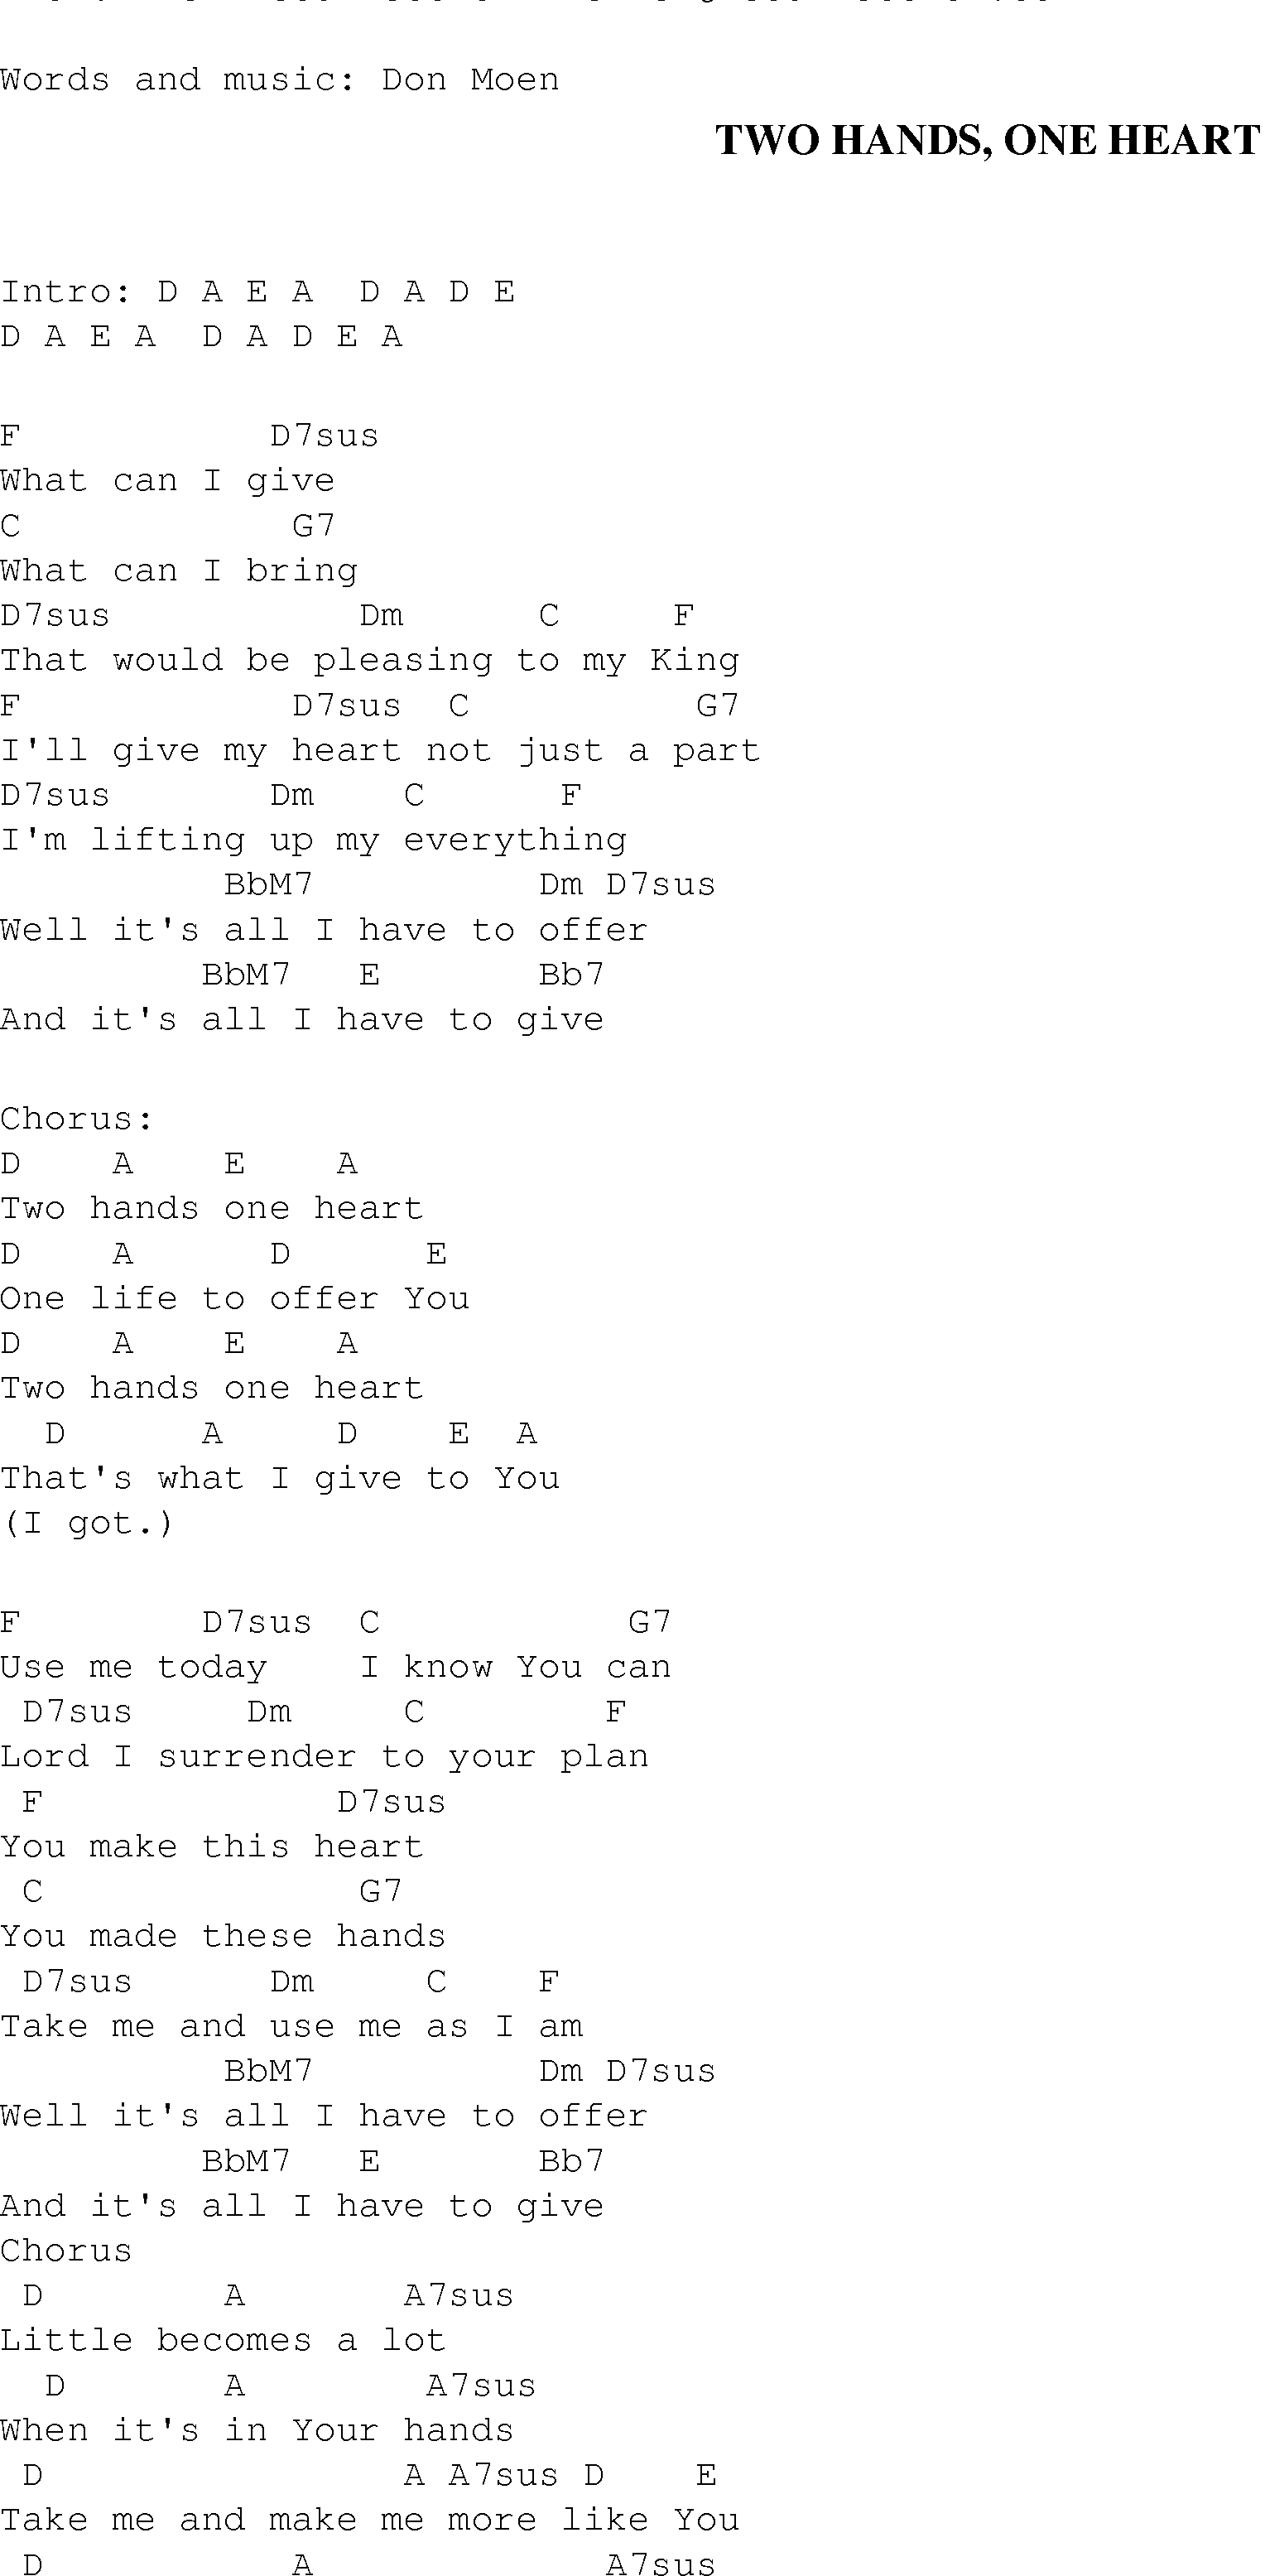 Two Hands One Heart - Christian Gospel Song Lyrics and Chords